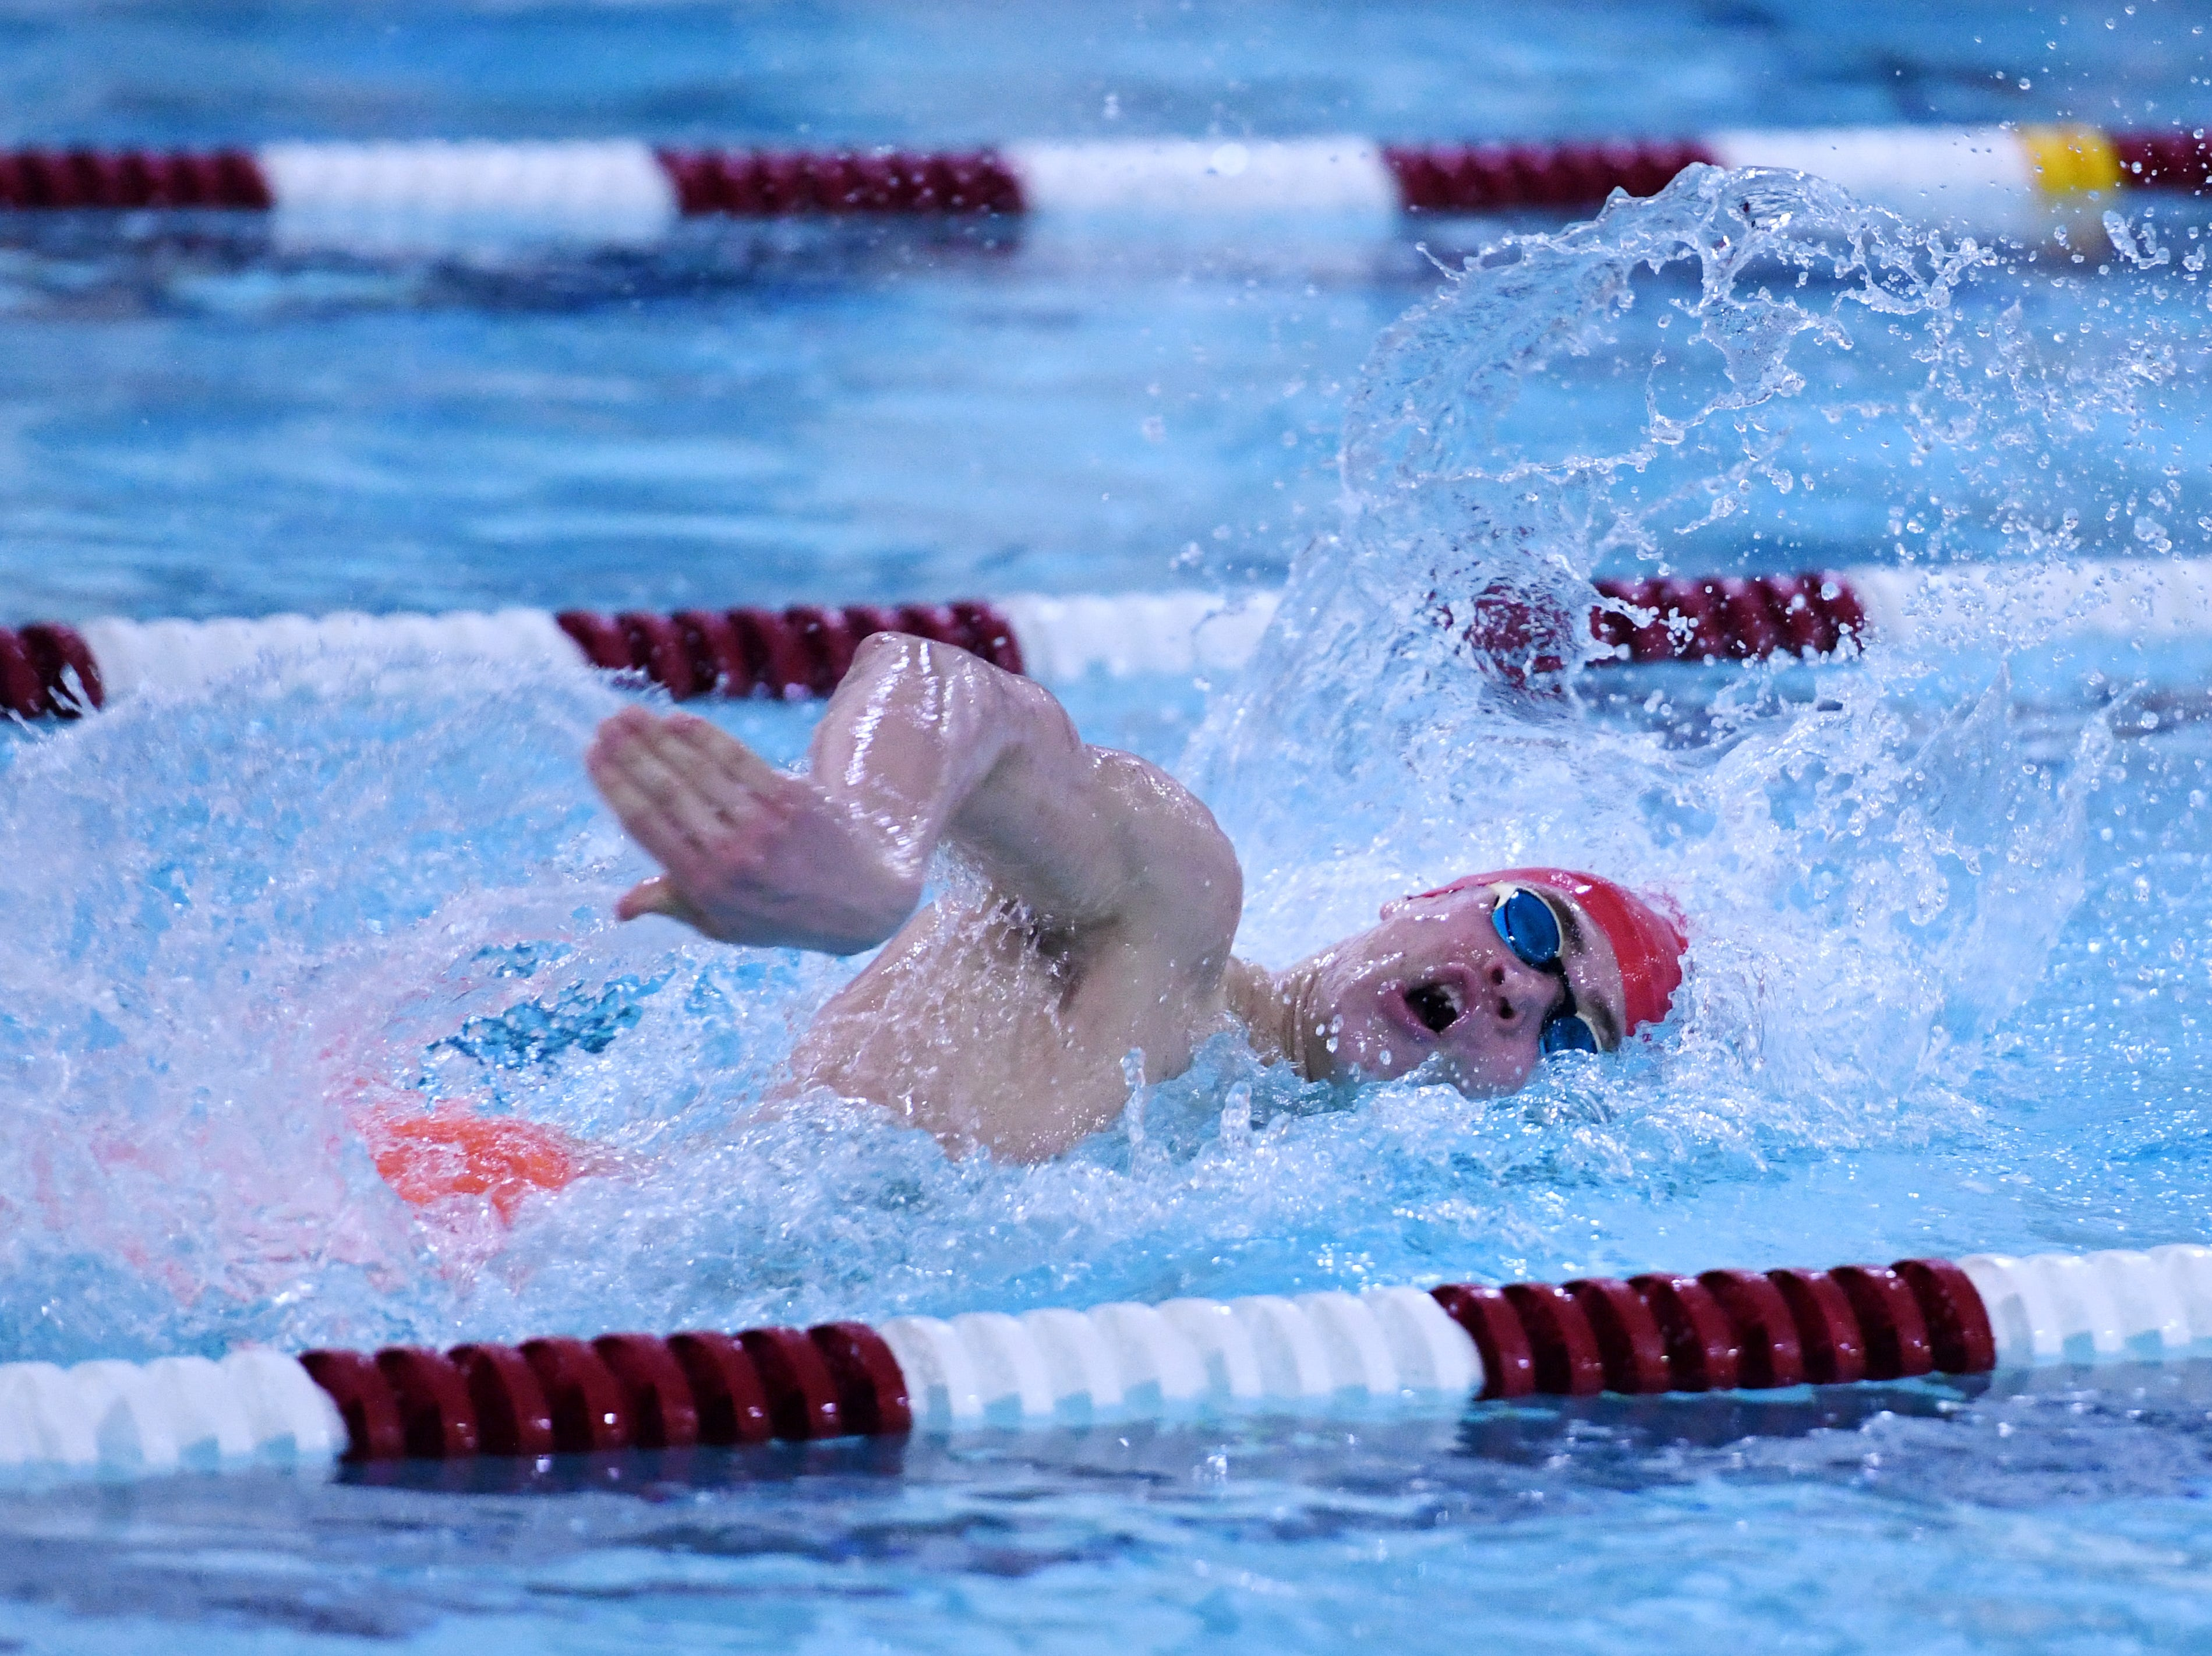 Morris County Swimming Championships at Morristown High School on Saturday, January 26, 2019. Mendham senior Lukas Scheidl, who plans to swim at Brown University, won the 200-meter individual medley and 400-meter freestyle.